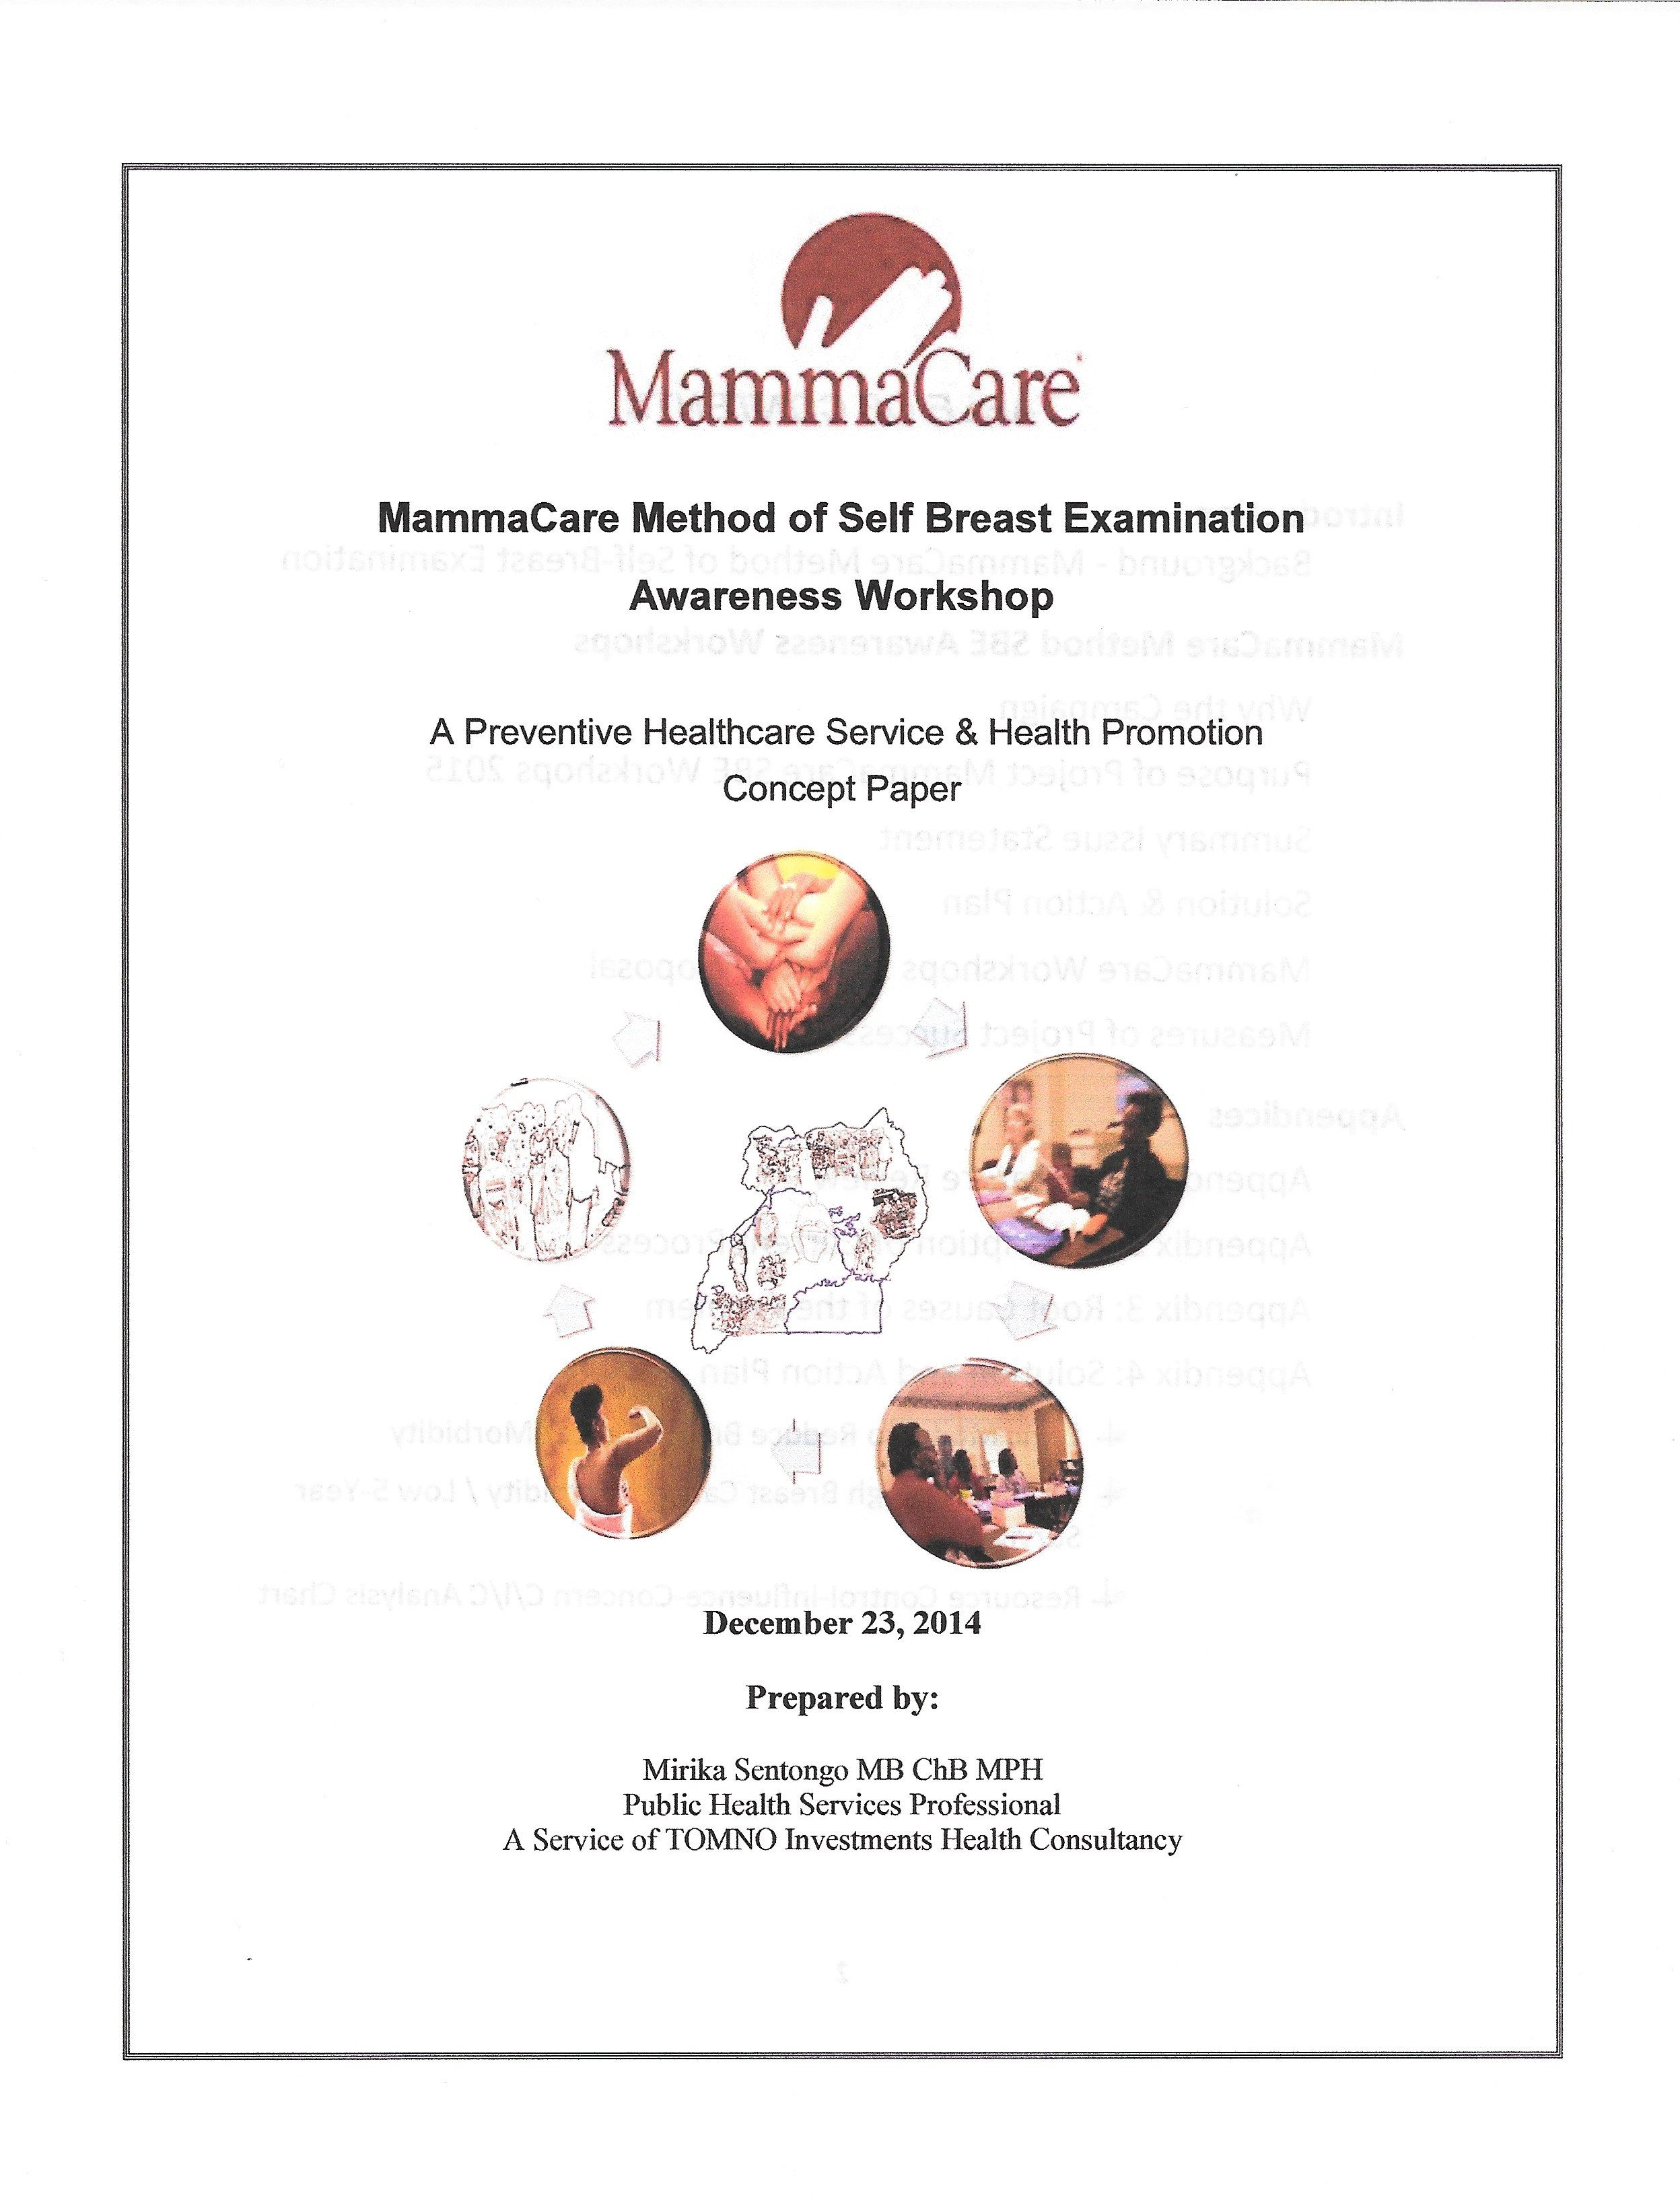 Pin on mammacare method of selfbreast examination a